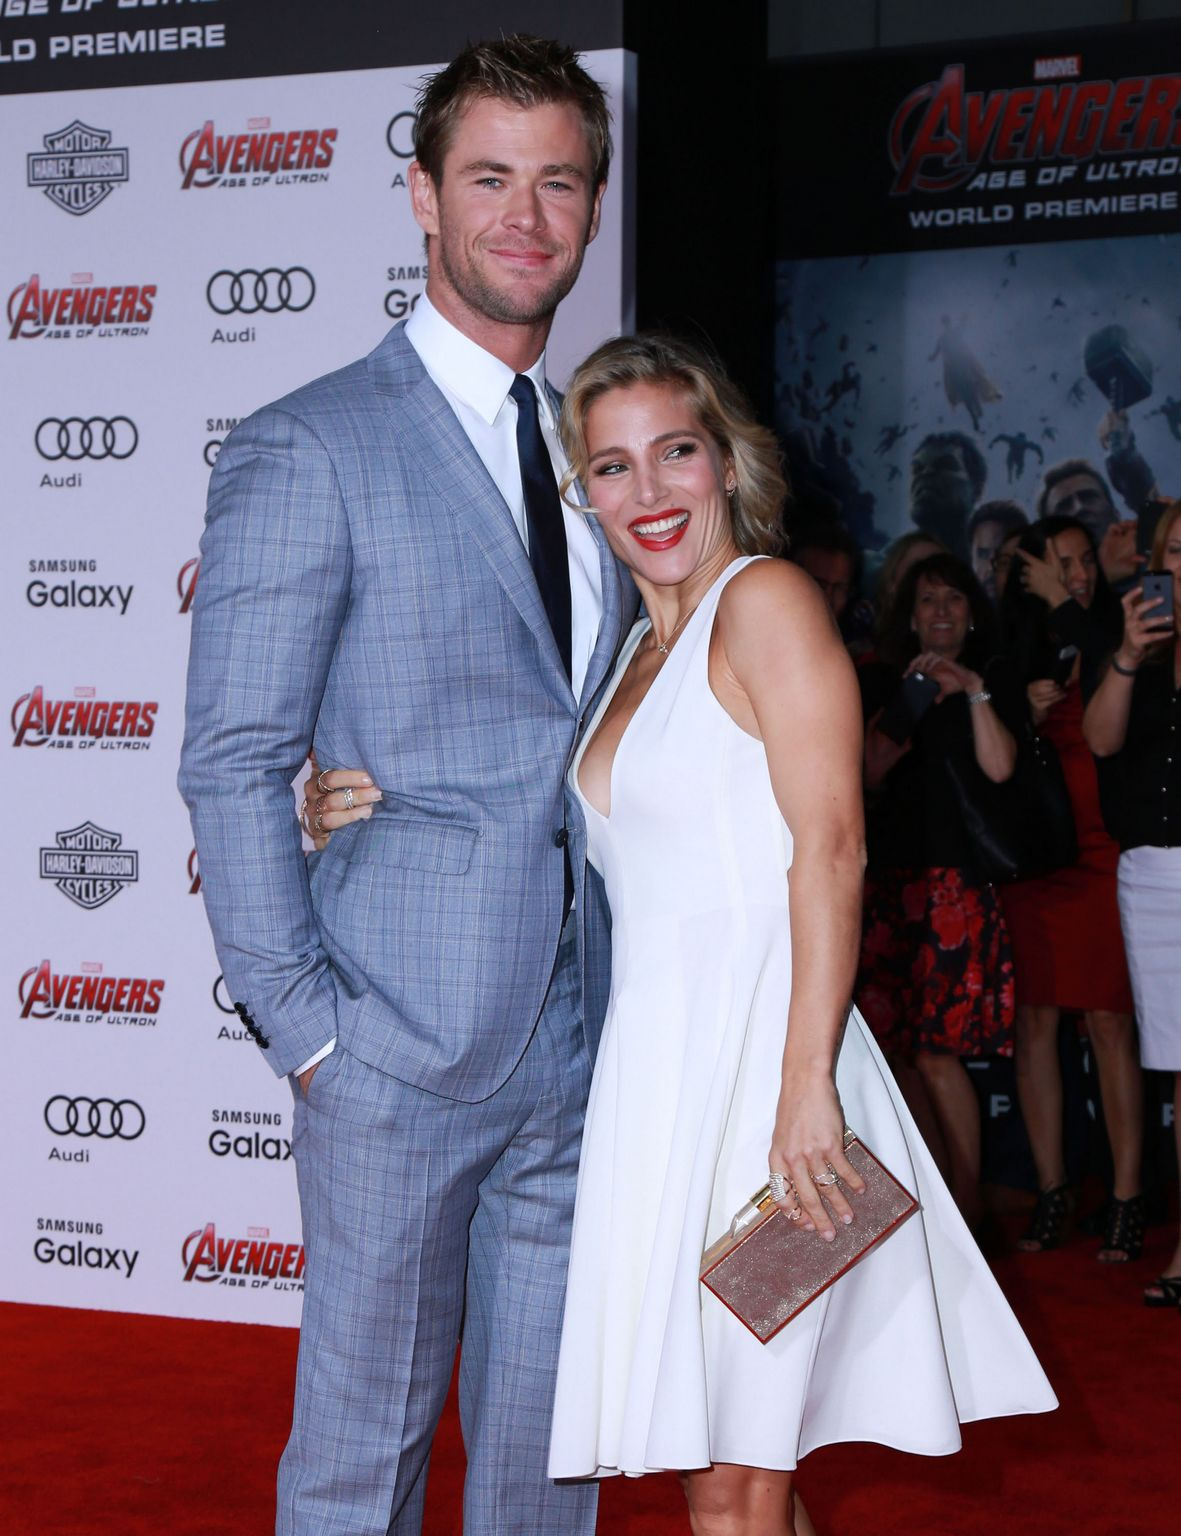 Chris Hemsworth and Elsa Pataky At Avengers: Age Of Ultron Los Angeles Premiere-1